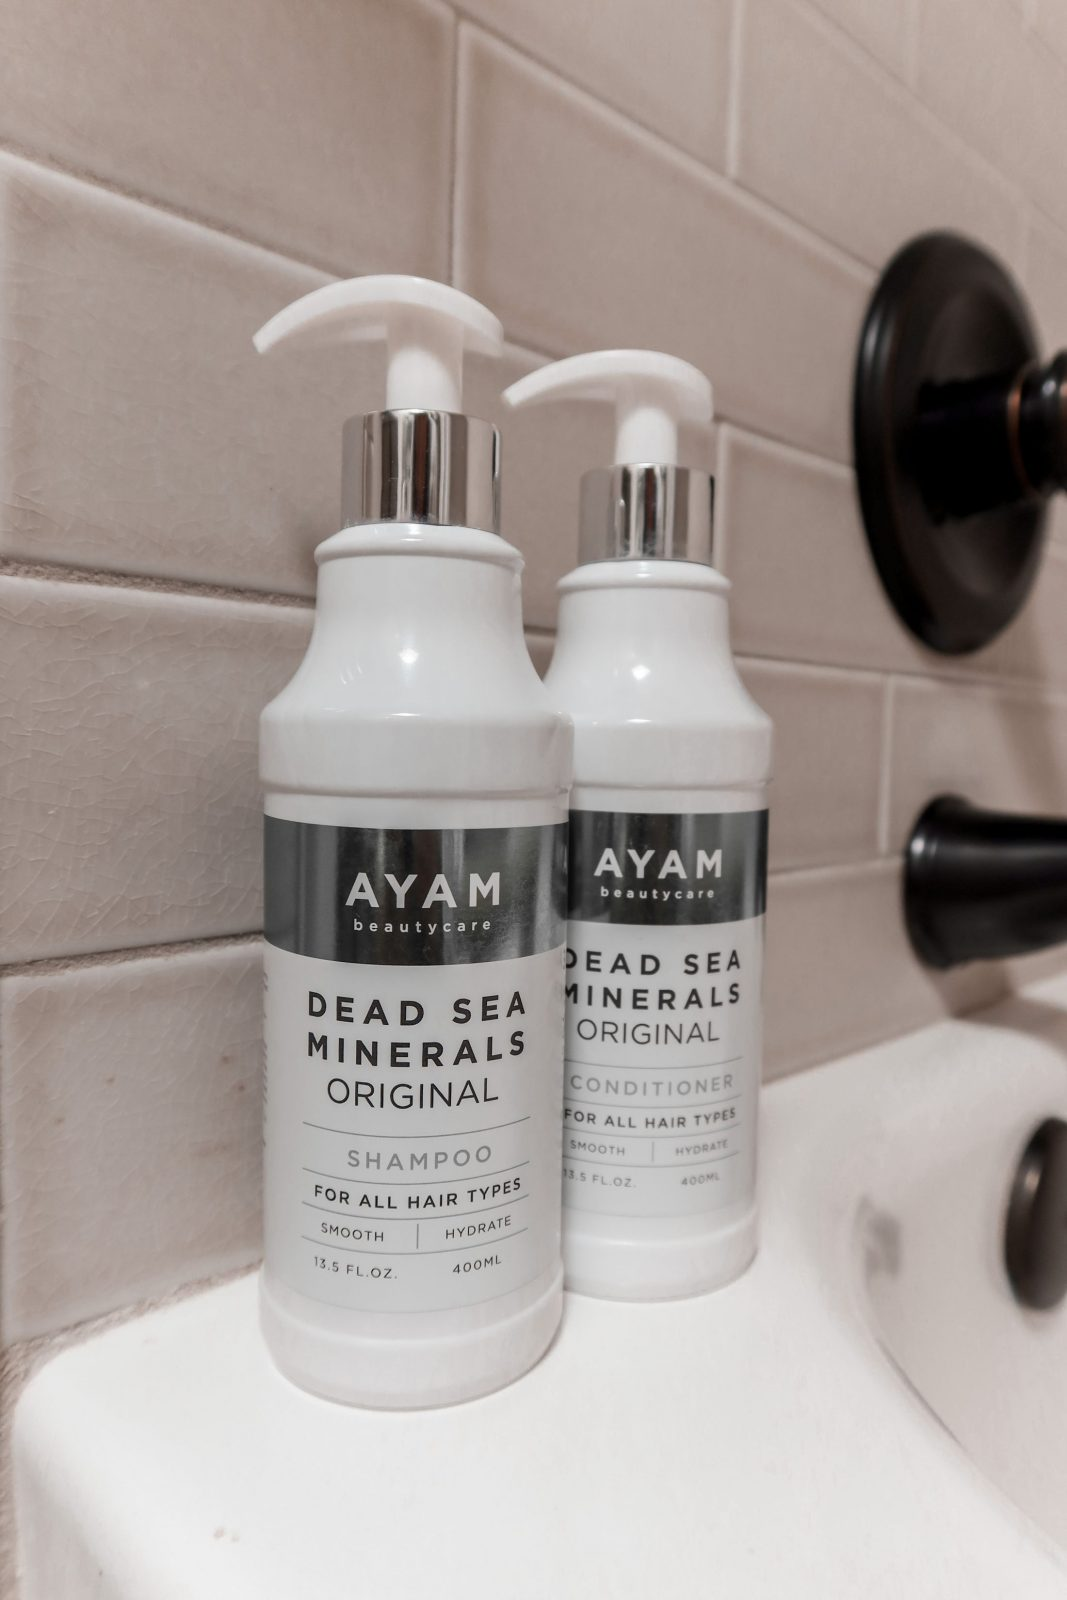 This is a close up of Ayam Beautycare shampoo and conditioner in Adaleta's bathroom.